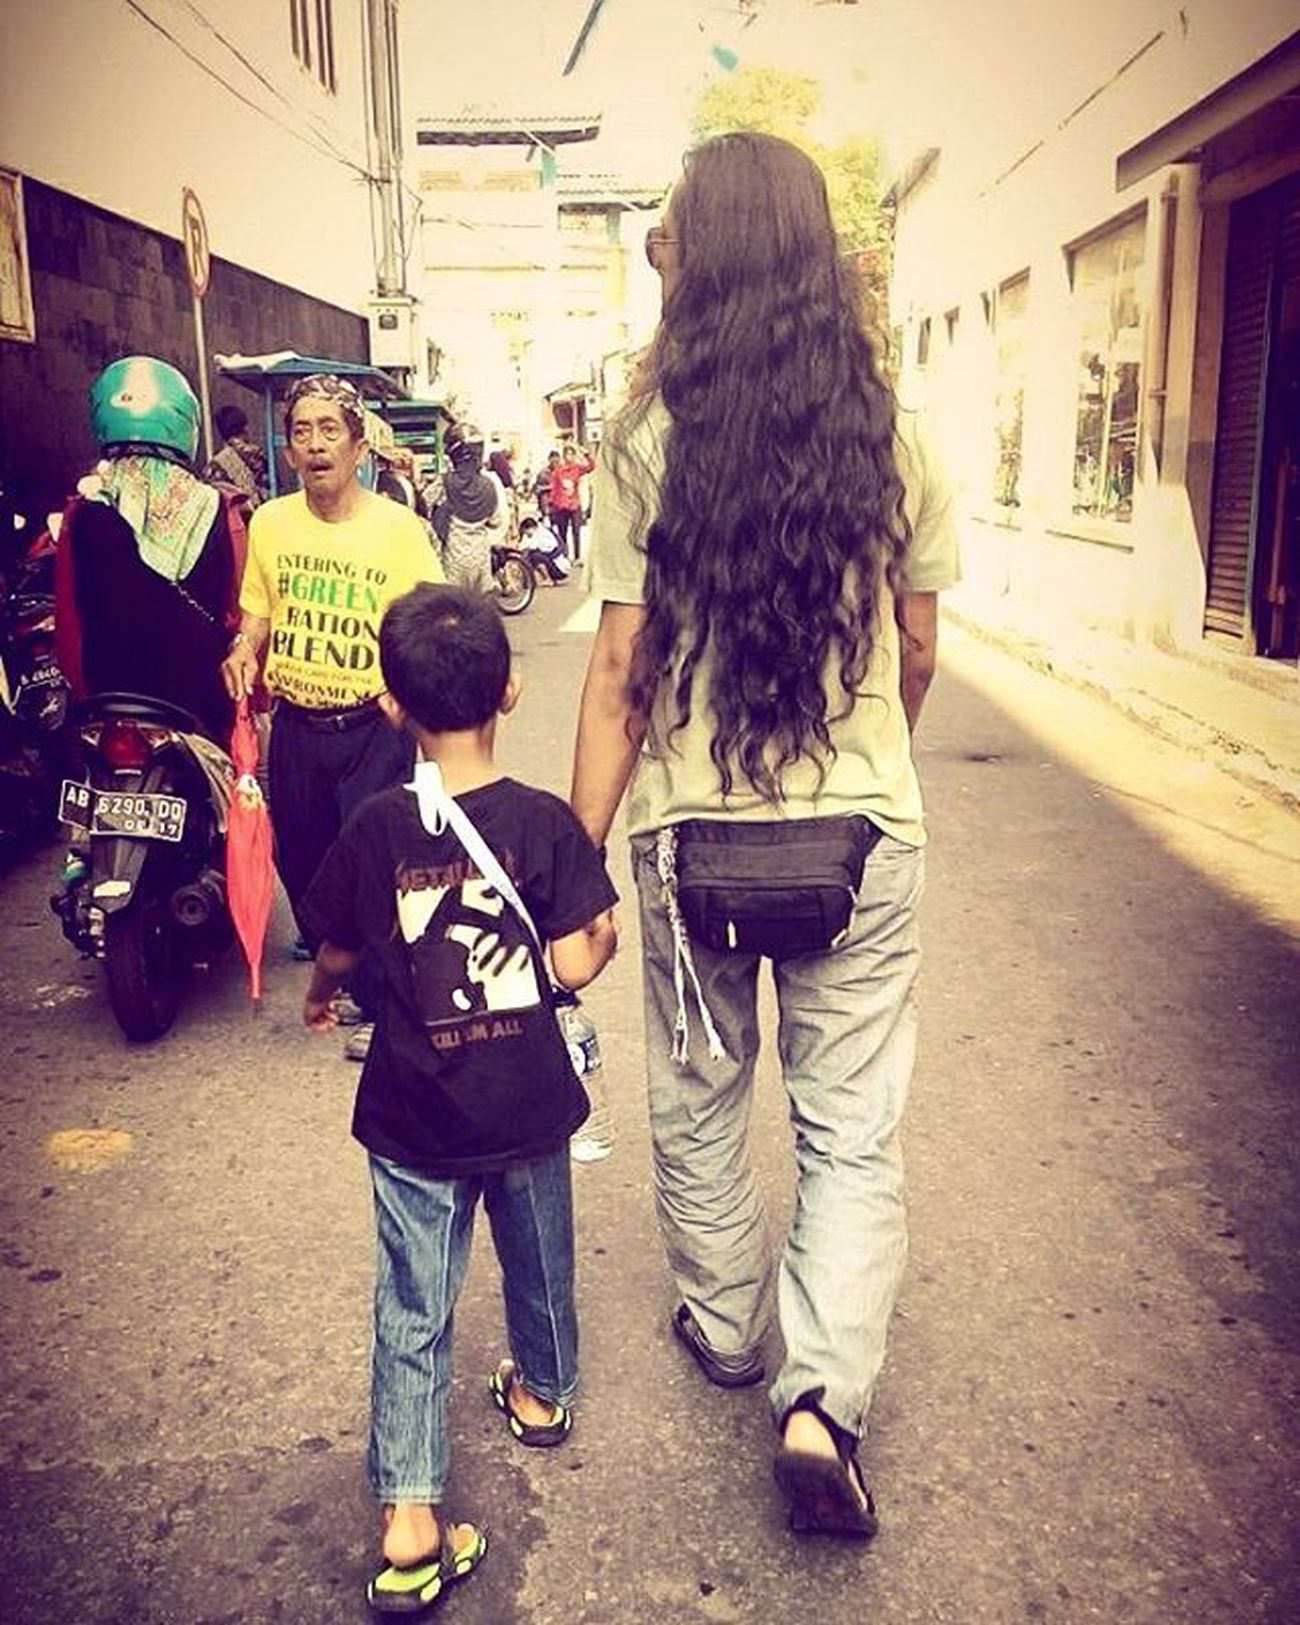 AFTERNOON WALK Oyikk Ontheroad Longhair People SORE Instadaily Photo by @nazulaelva Longhair♥ Longhair Longhairedguys Longhairman